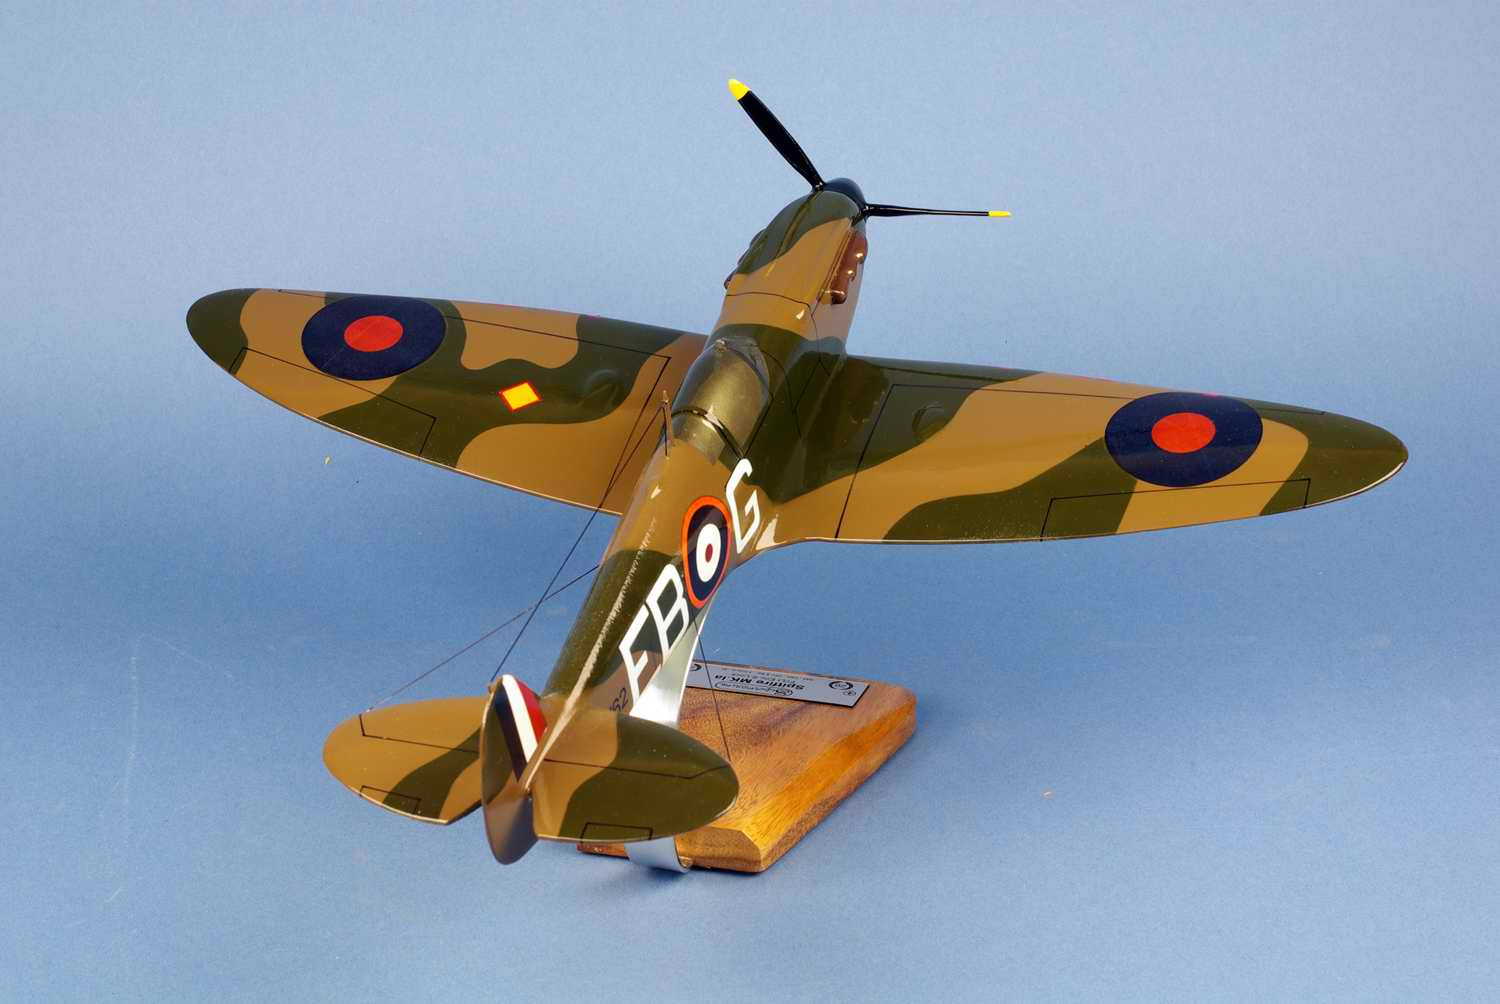 Maquette Avion SPITFIRE MKIA 41 Squadron RAF Eric Stanley Lock ROYAL AIR FORCE 1/24